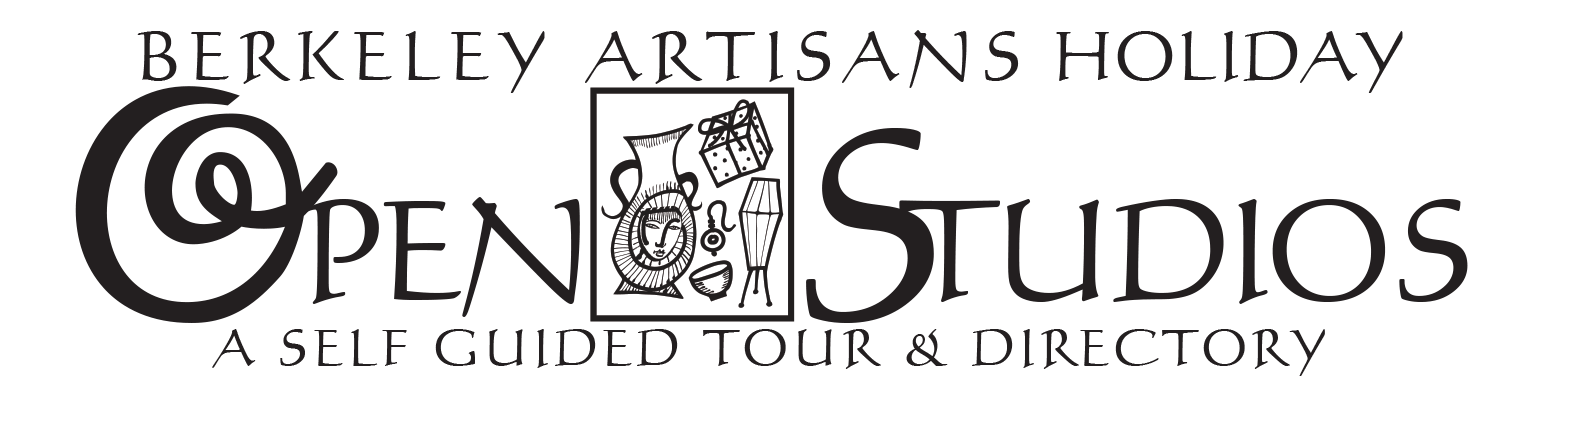 BERKELEY ARTISANS HOLIDAY OPEN STUDIOS<br><small>A Free Self-Guided Tour of Workshops & Galleries</small>